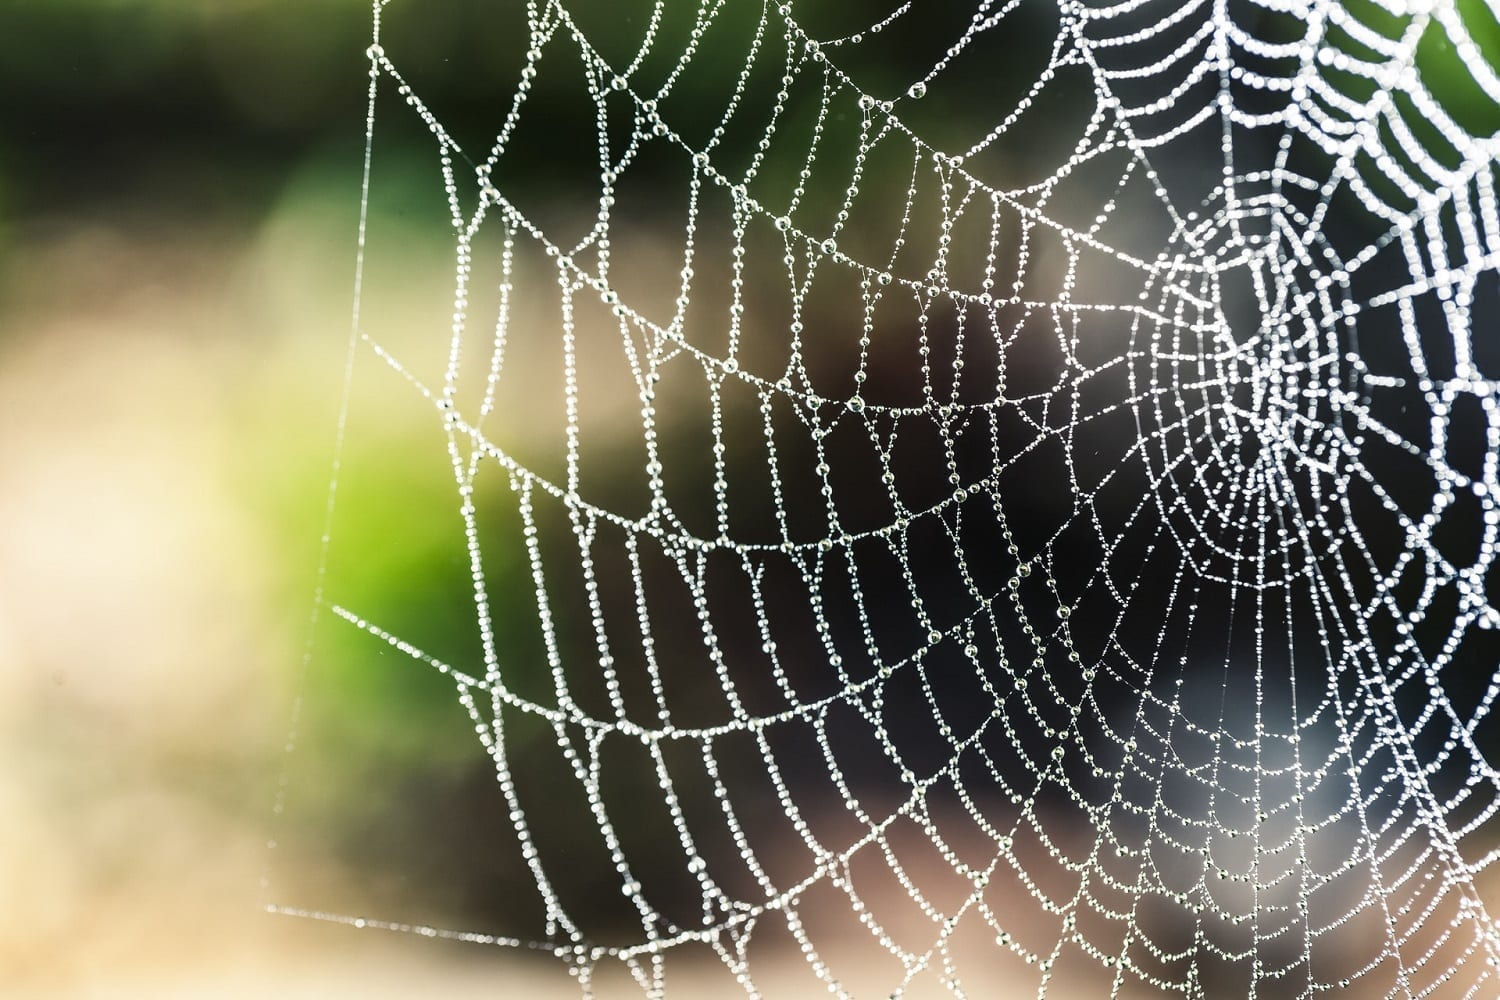 Spider web sprinkled with dew, photo credit: pexels